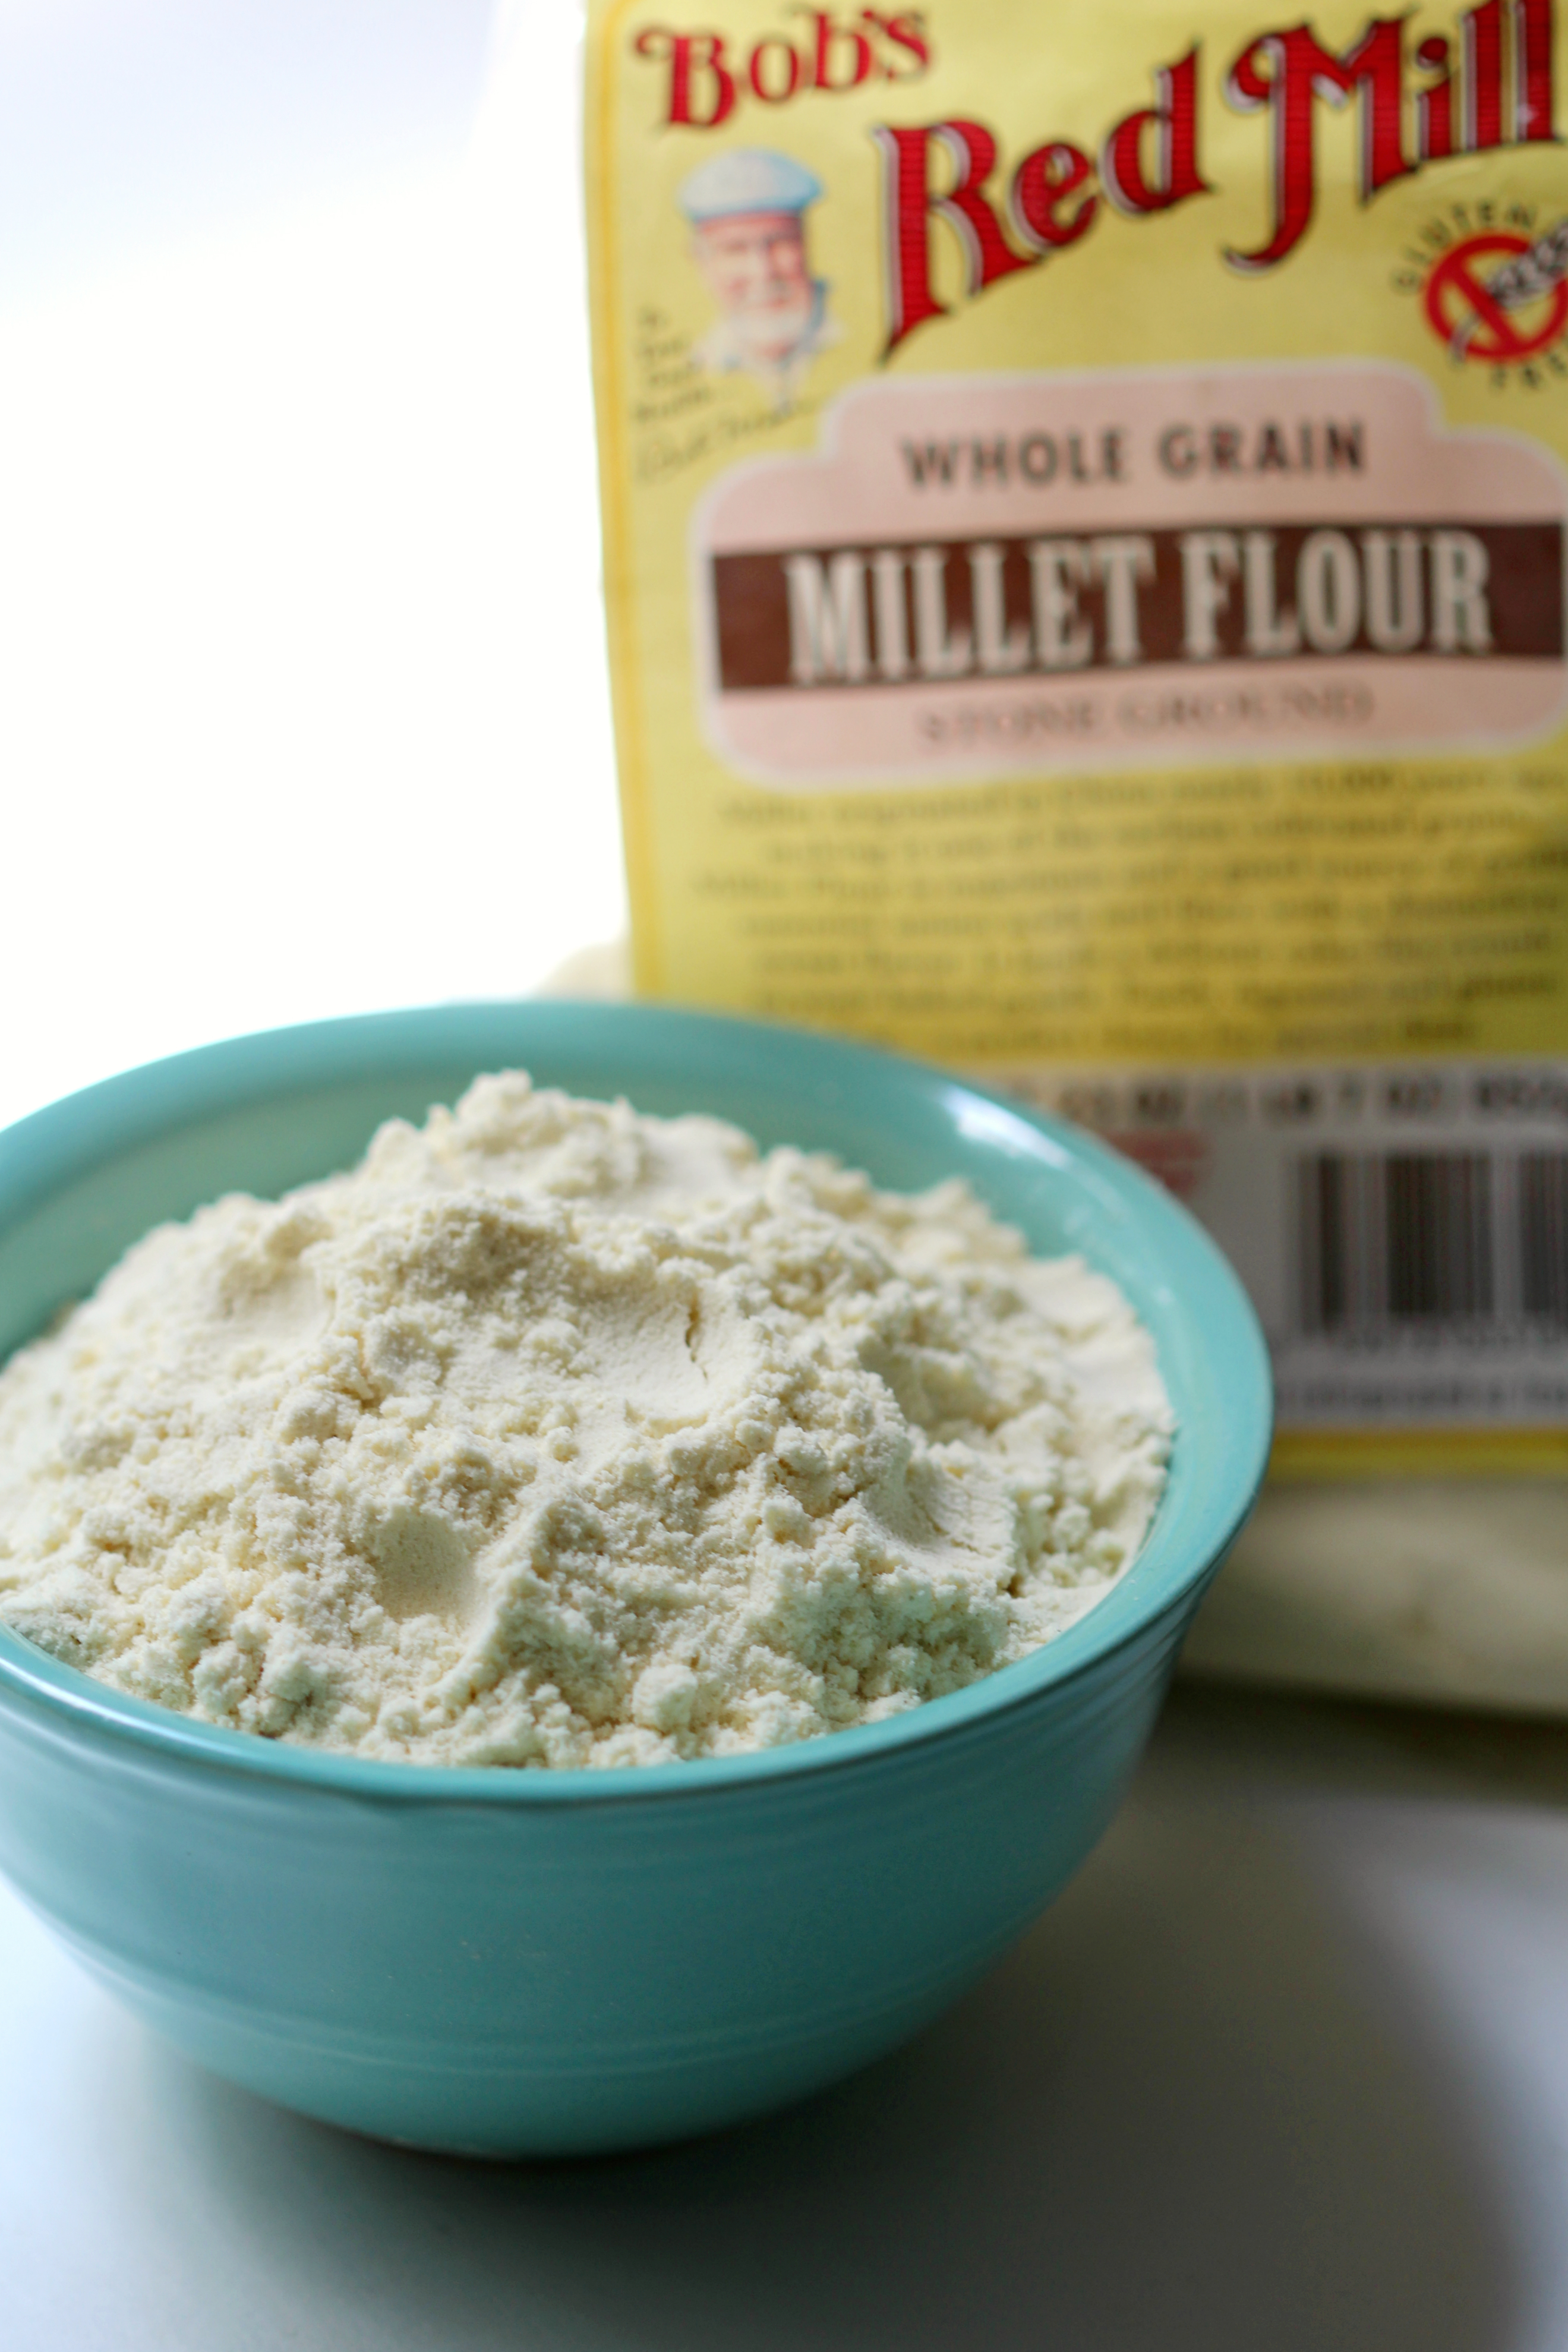 How to eat millet